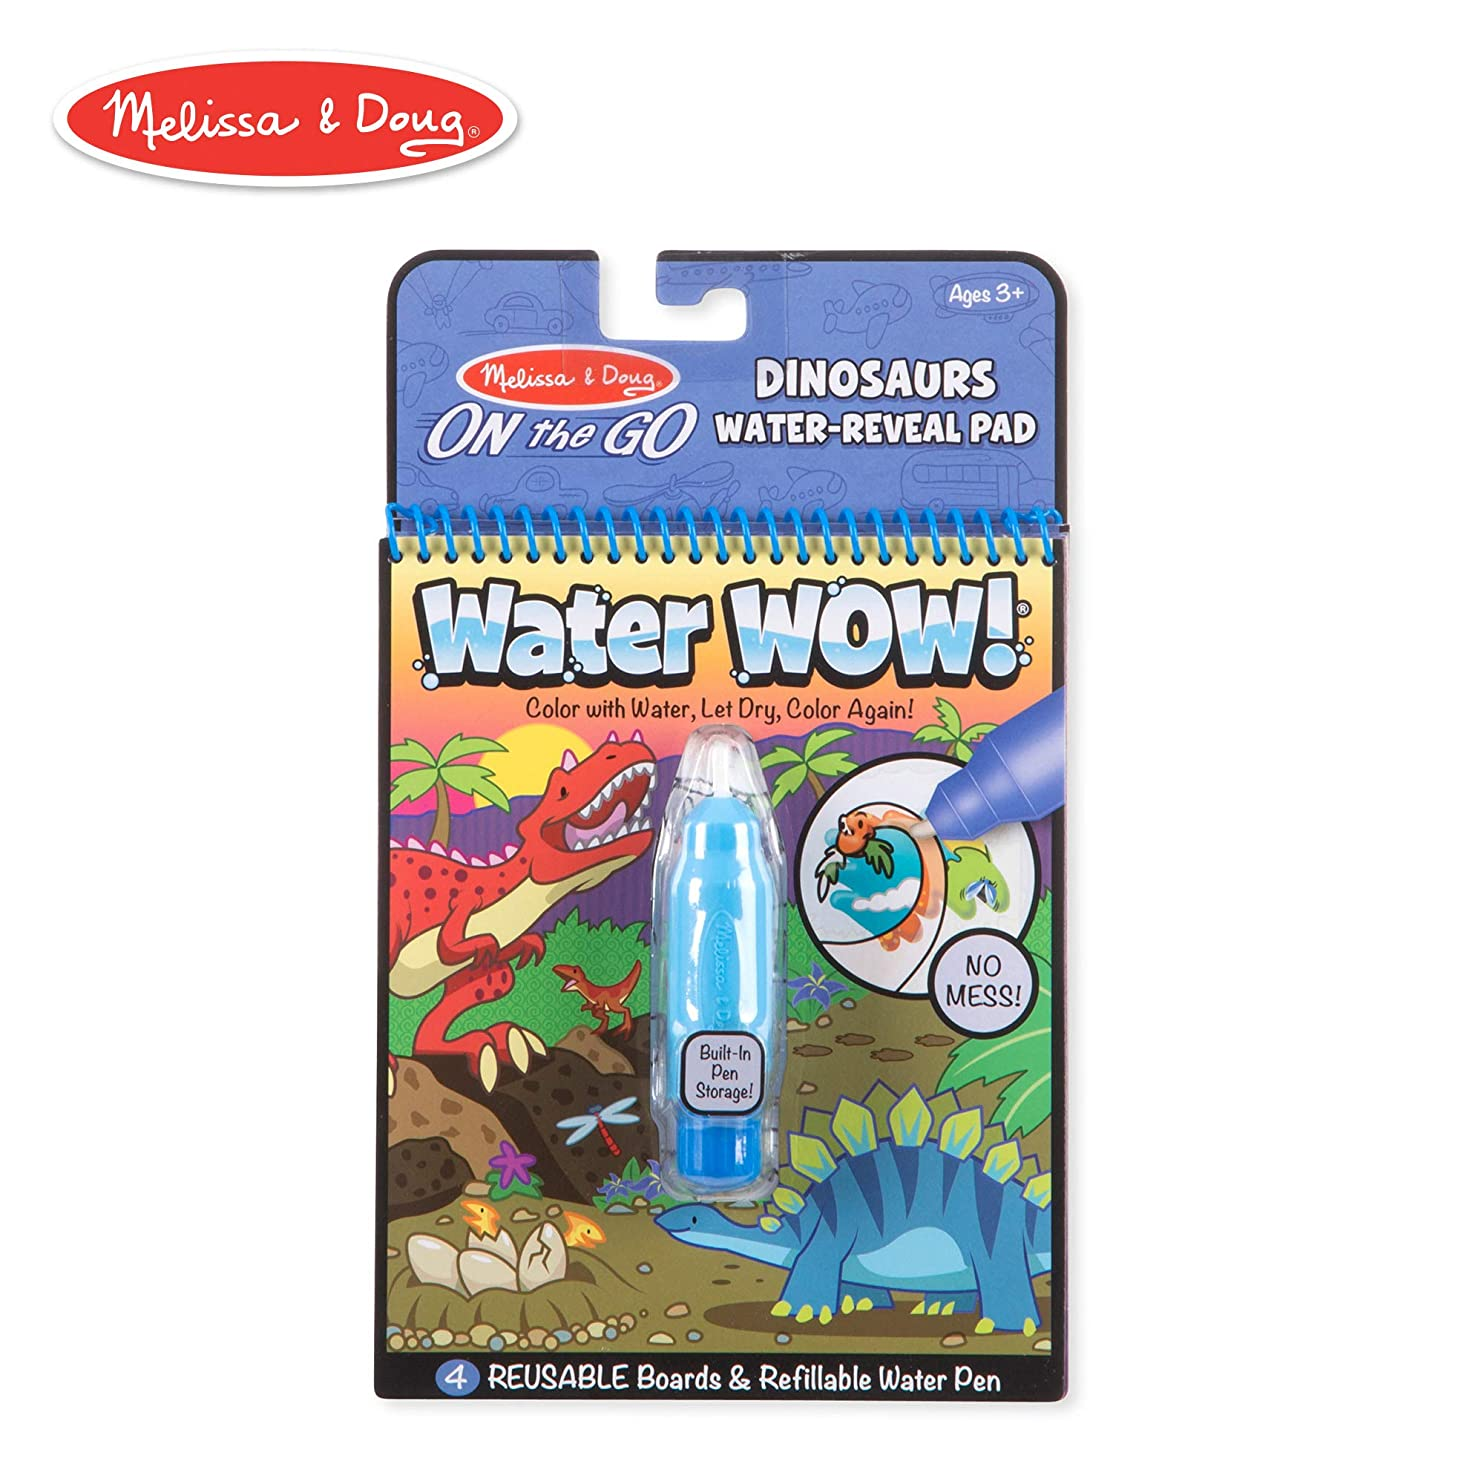 Melissa & Doug On The Go Water Wow! Dinosaurs Reusable Water-Reveal Activity Pad, Chunky-Size Water Pen wfiwsznlmex18